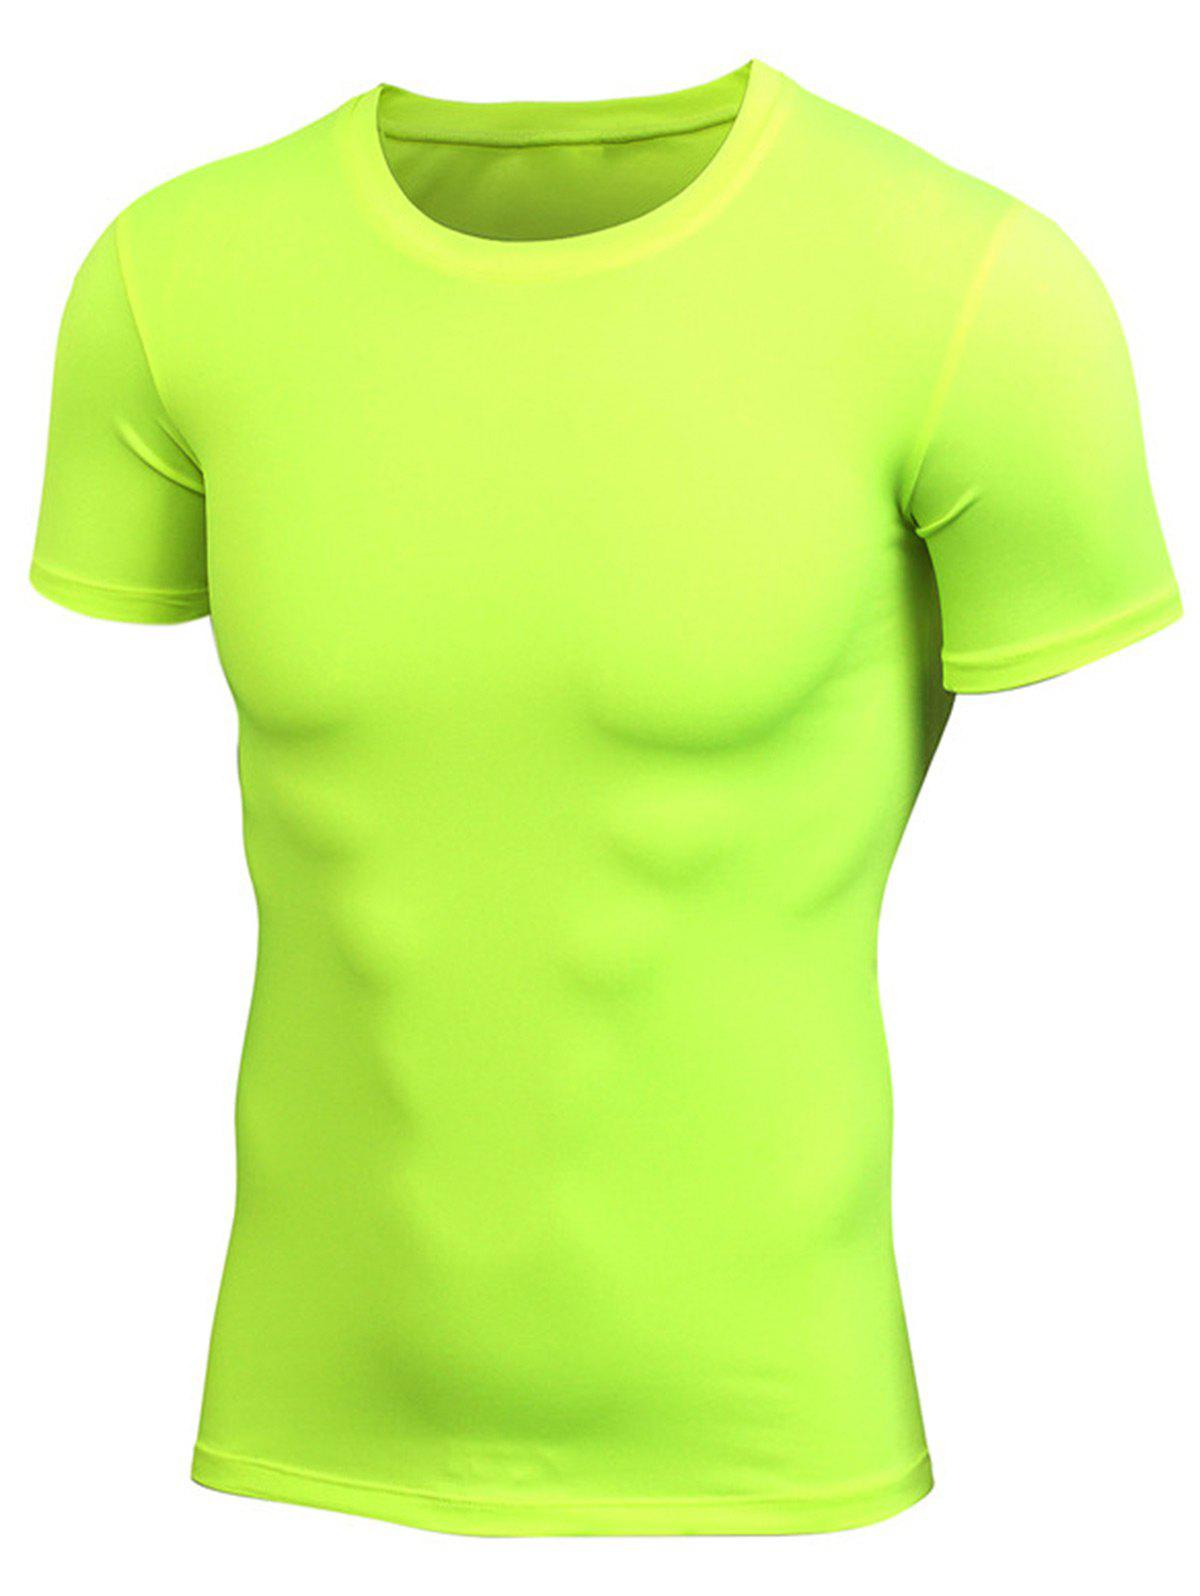 Stretchy Fitted Short Sleeve Gym T-shirt - NEON GREEN 2XL